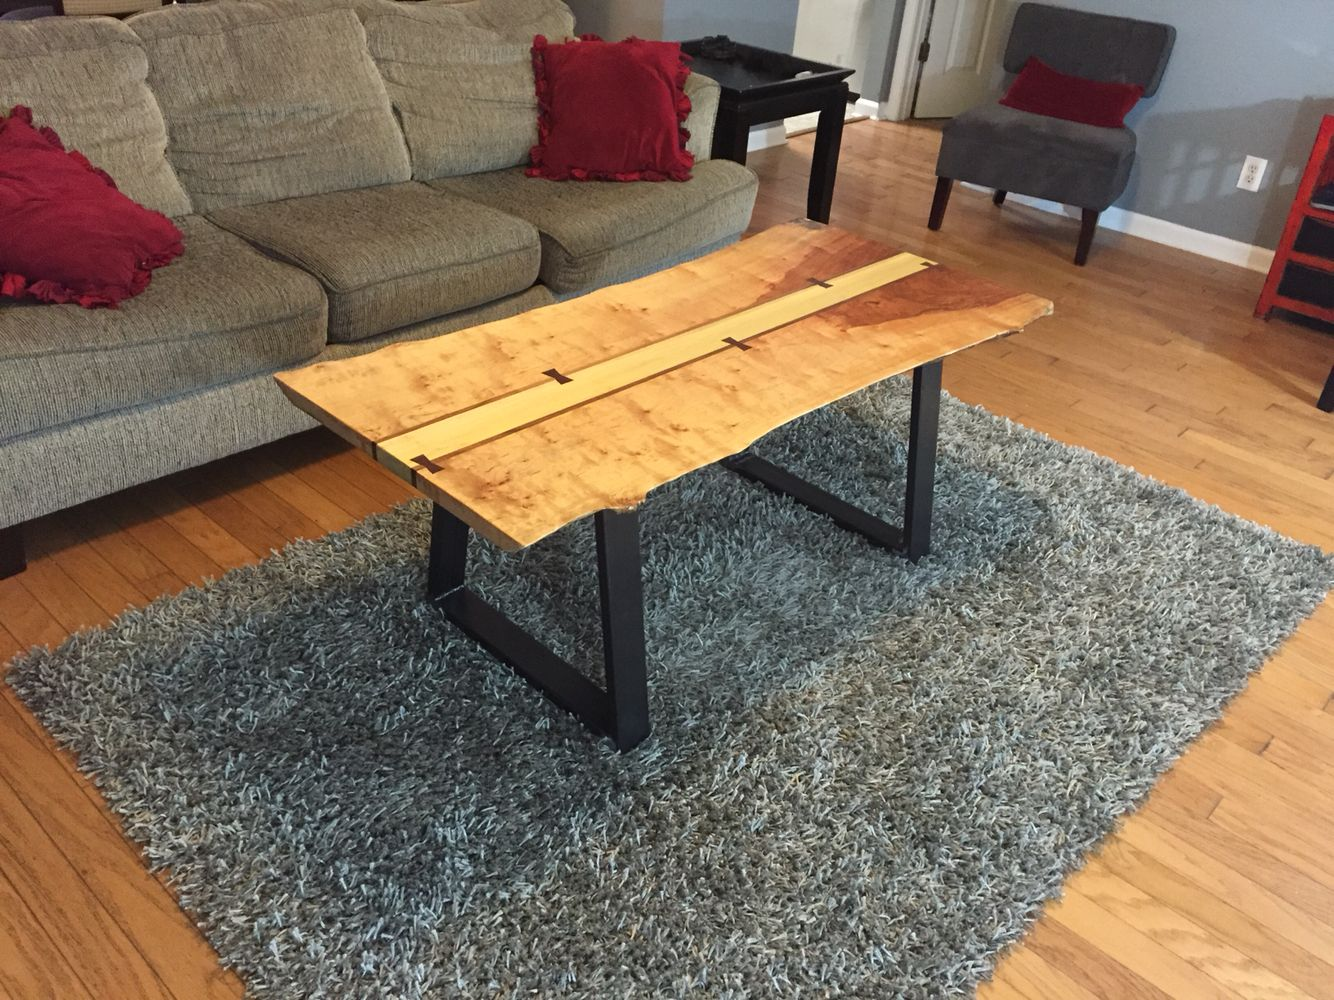 River birch live edge coffee table furniture pinterest birch river birch live edge coffee table geotapseo Choice Image